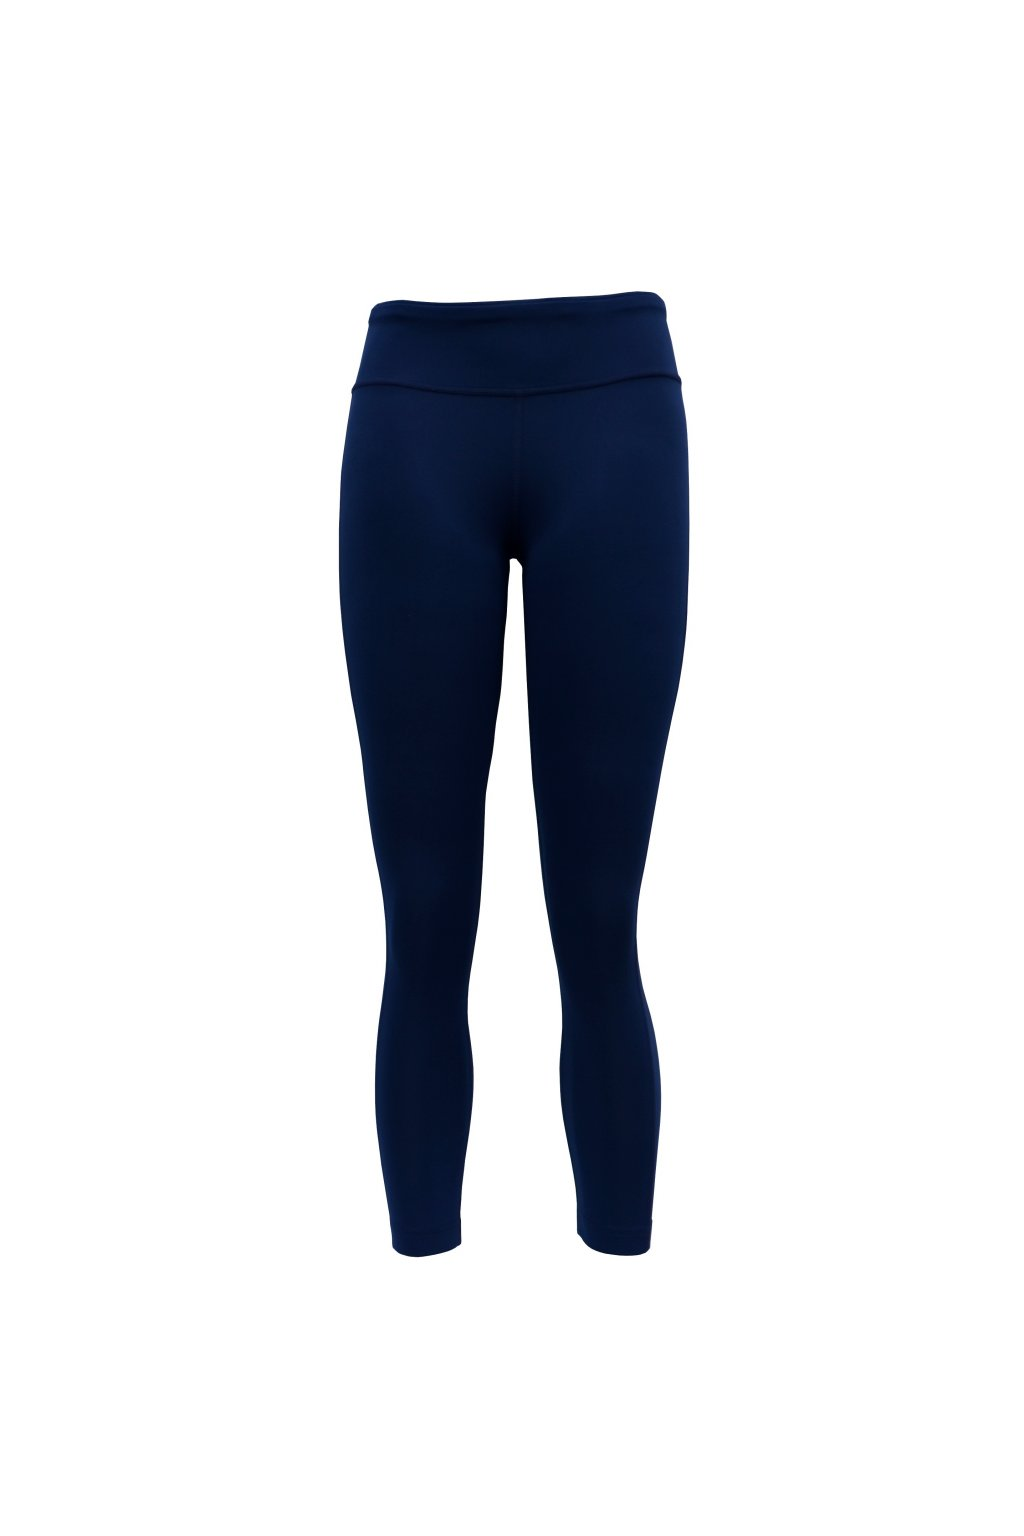 ce1234 reebok workout 78tight (1)